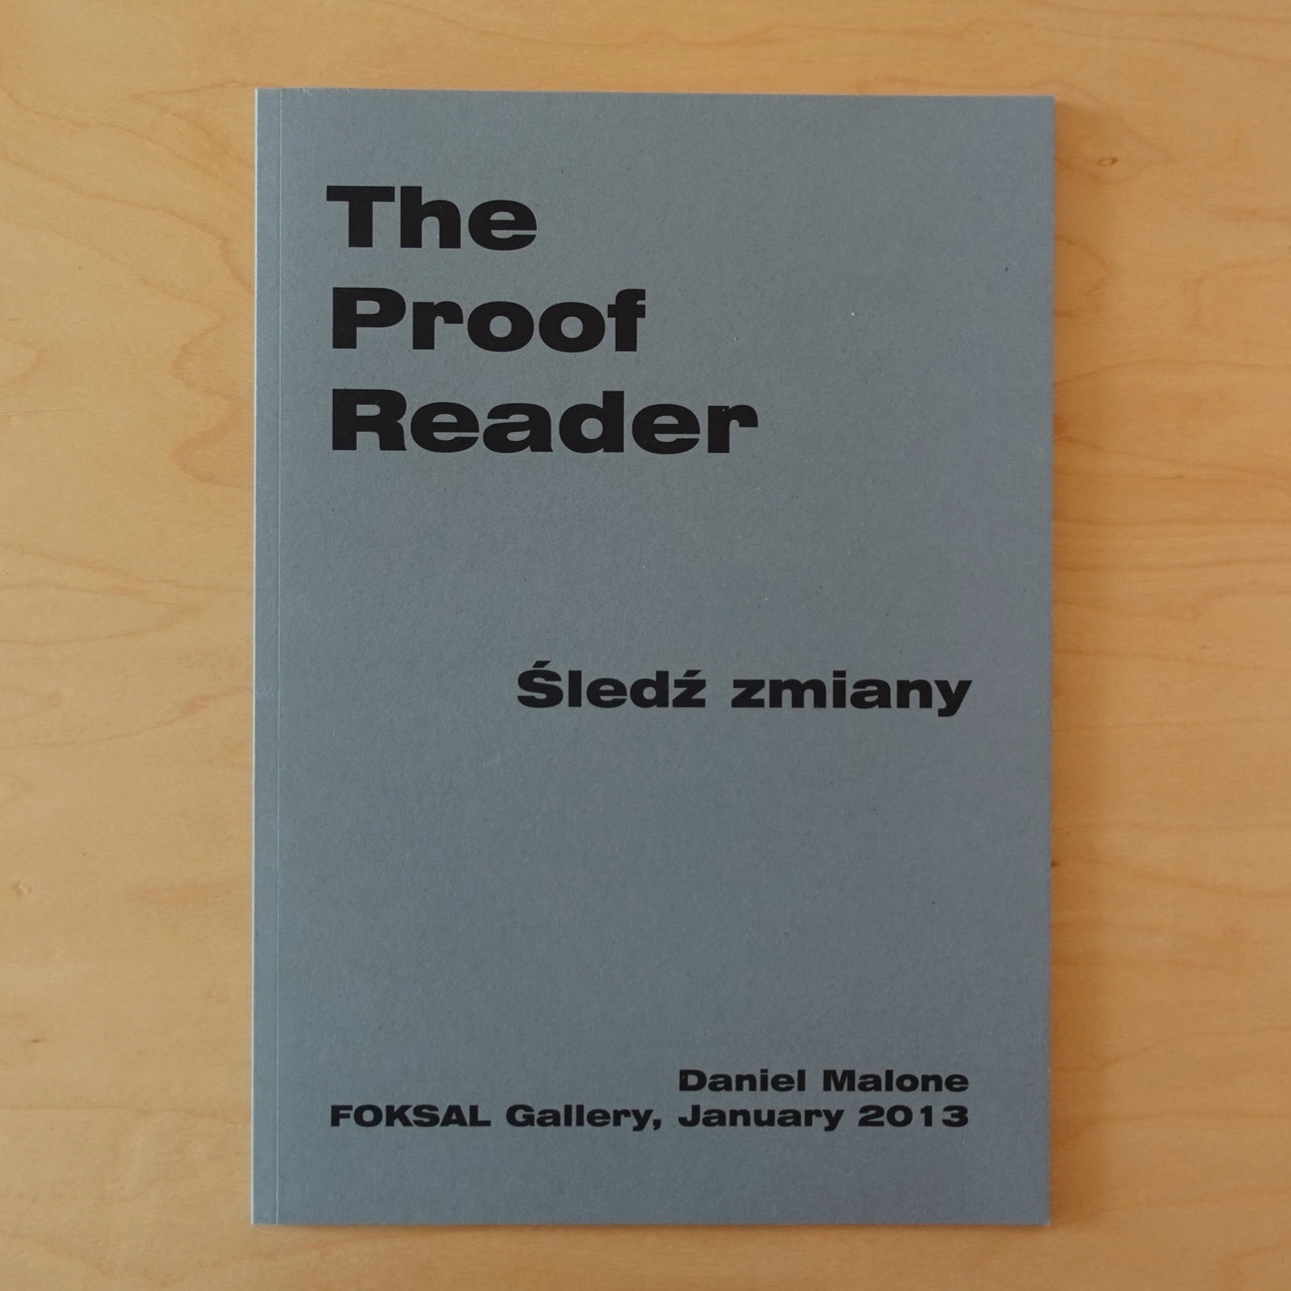 The Proofreader